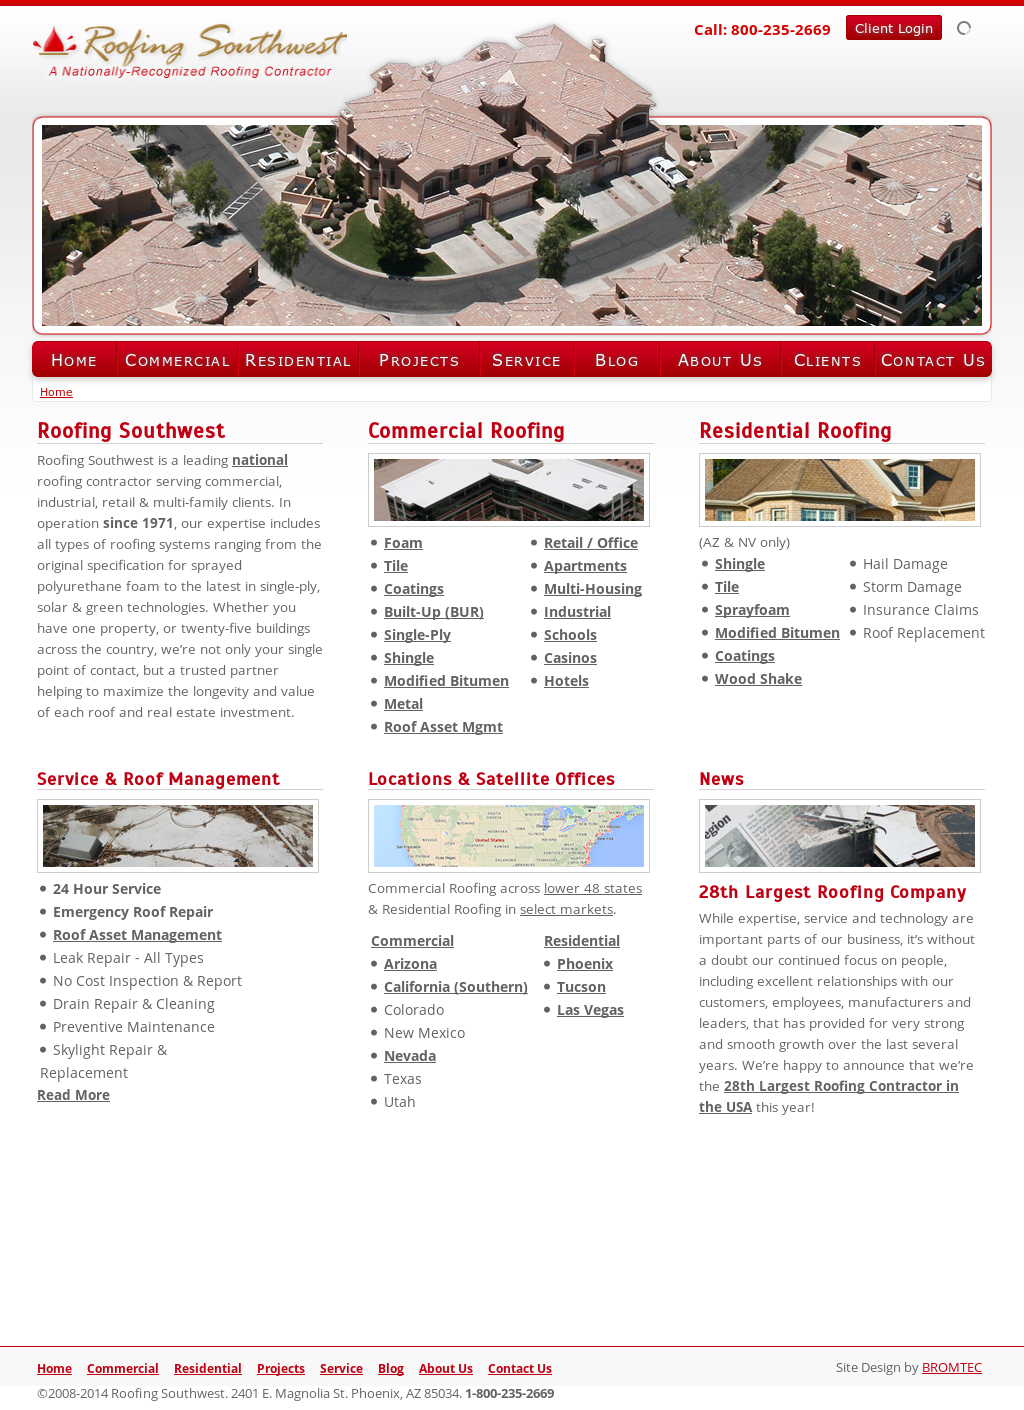 history of roofing With quality roofing materials and professional help so readily available, most of us take our roofing systems for granted until they need repairing many are unaware of the major developments within the roofing industry which have transformed roofing systems through the ages.